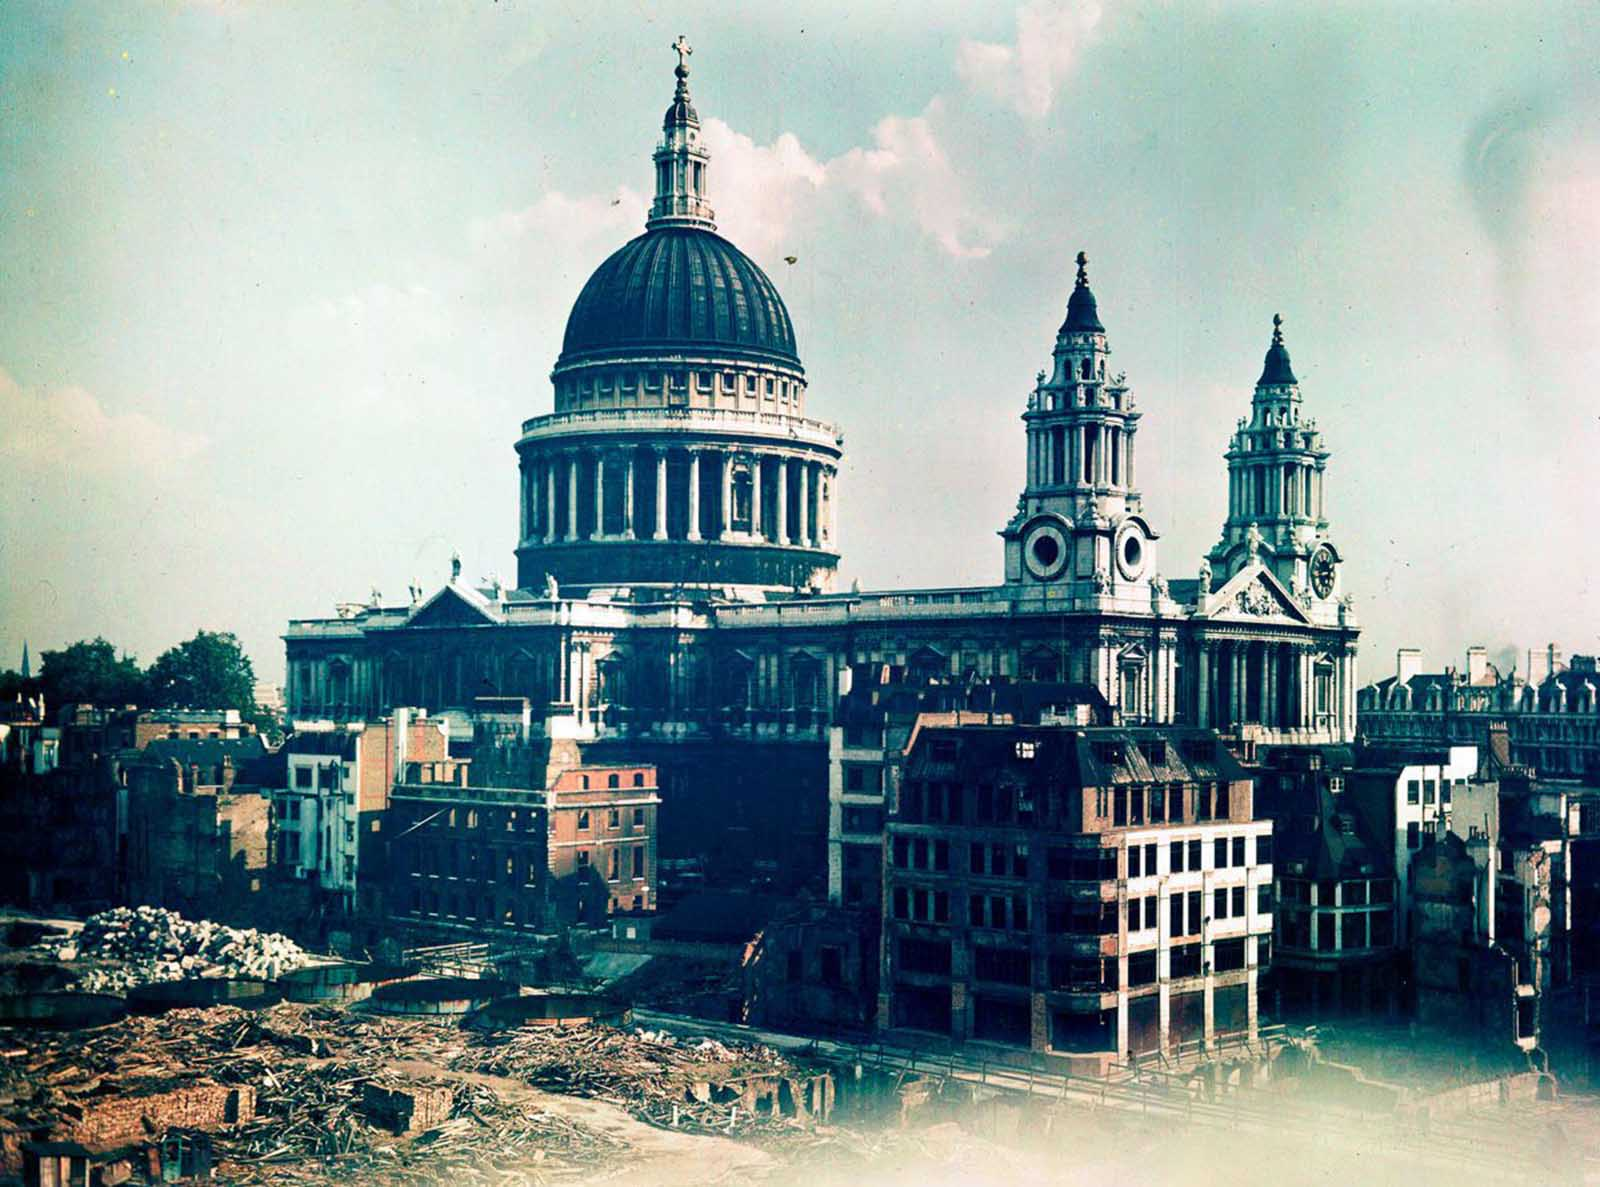 St. Paul's cathedral stands intact amid buildings destroyed by bombing. Dec. 10, 1943.